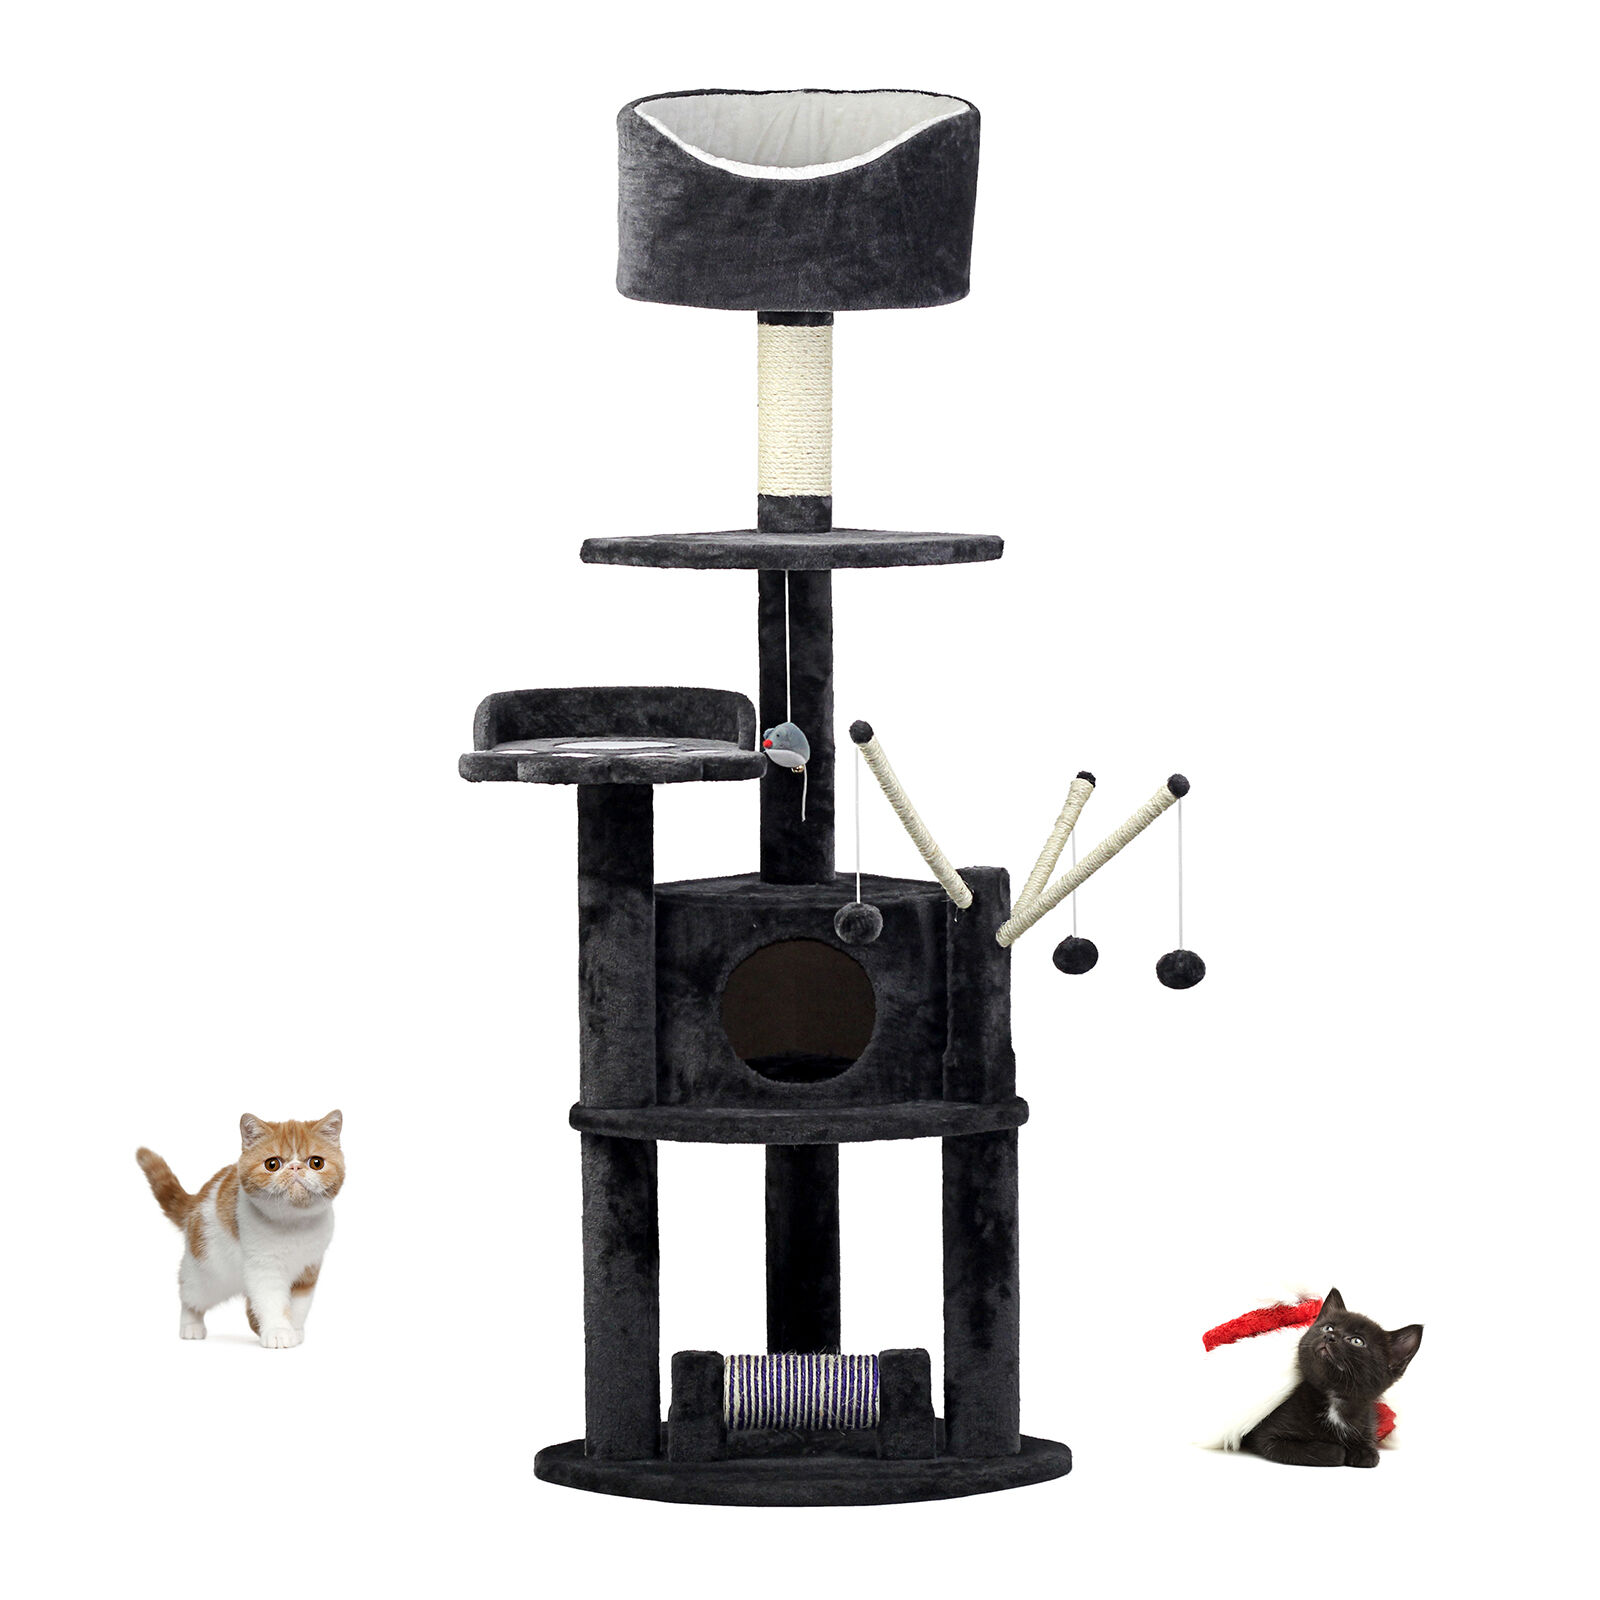 163cm Katzenbaum Cosy Pet Kratzbaum Heavy Duty Kitten Activity Center